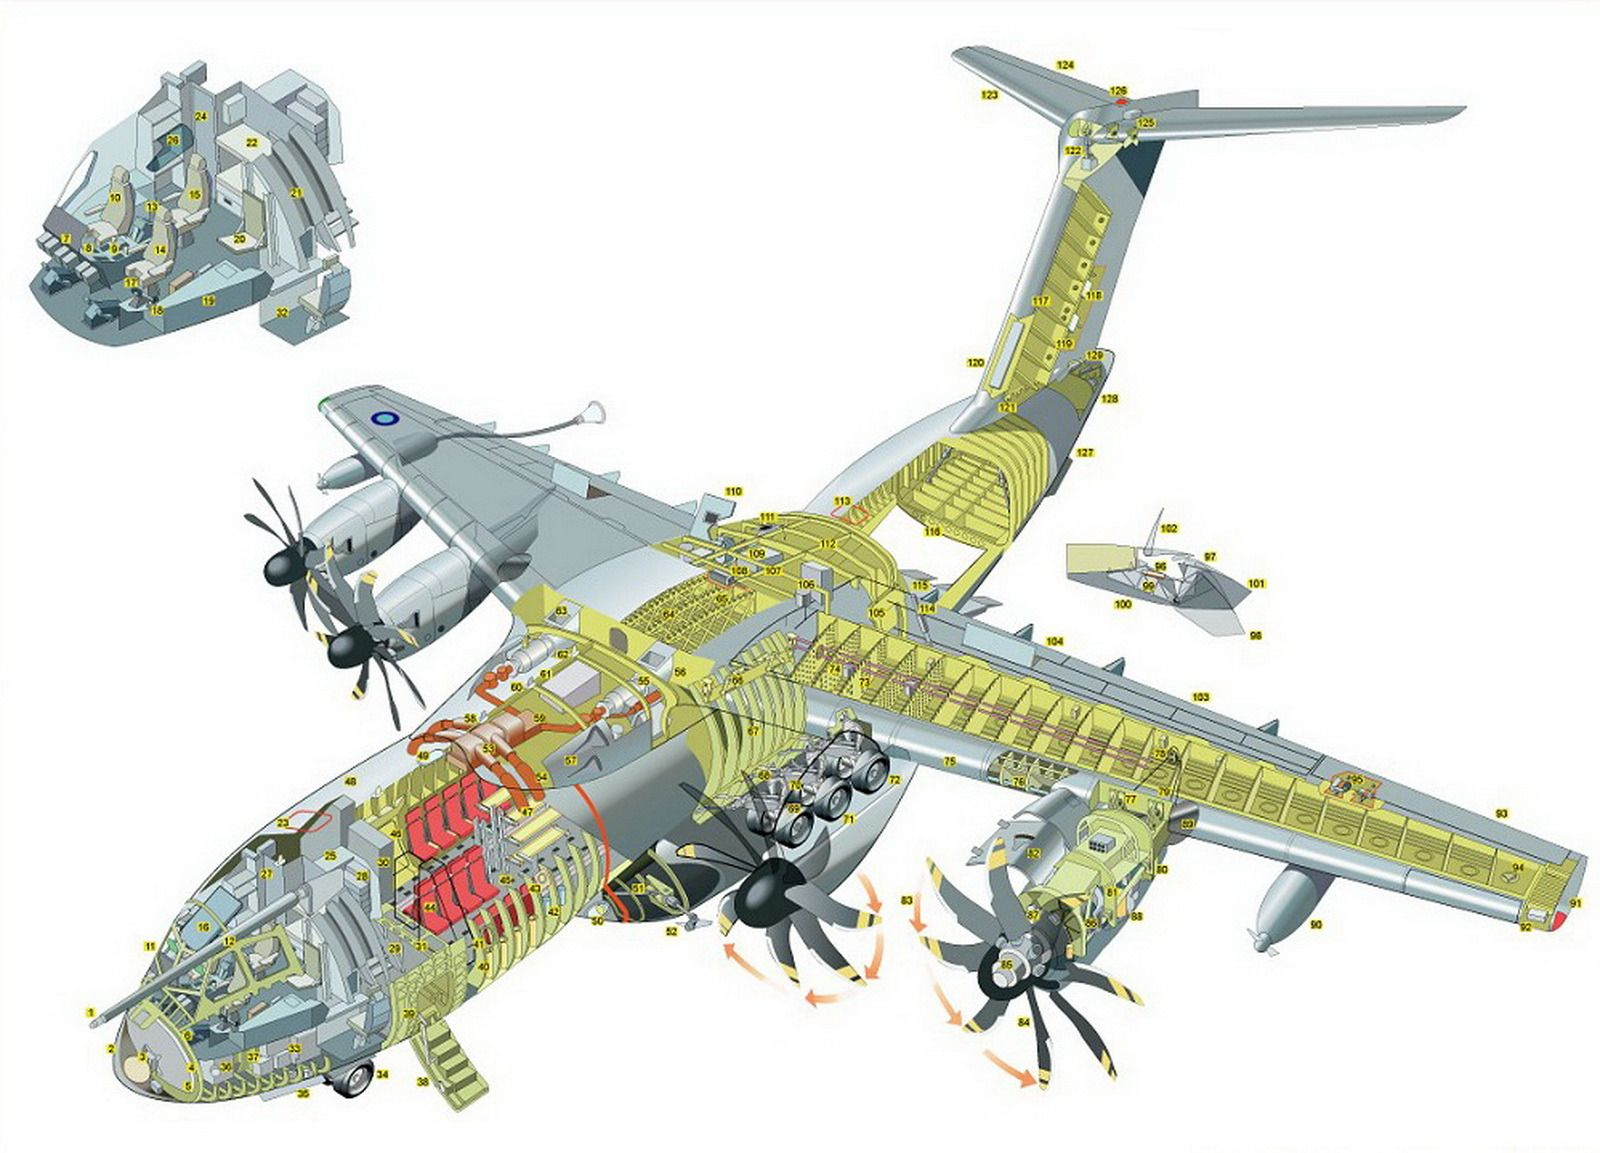 6fb1e7292545ad17201135fe7fa832ce 1349 best detial aircraft related images on pinterest aircraft tomar 940 wiring diagram at bakdesigns.co